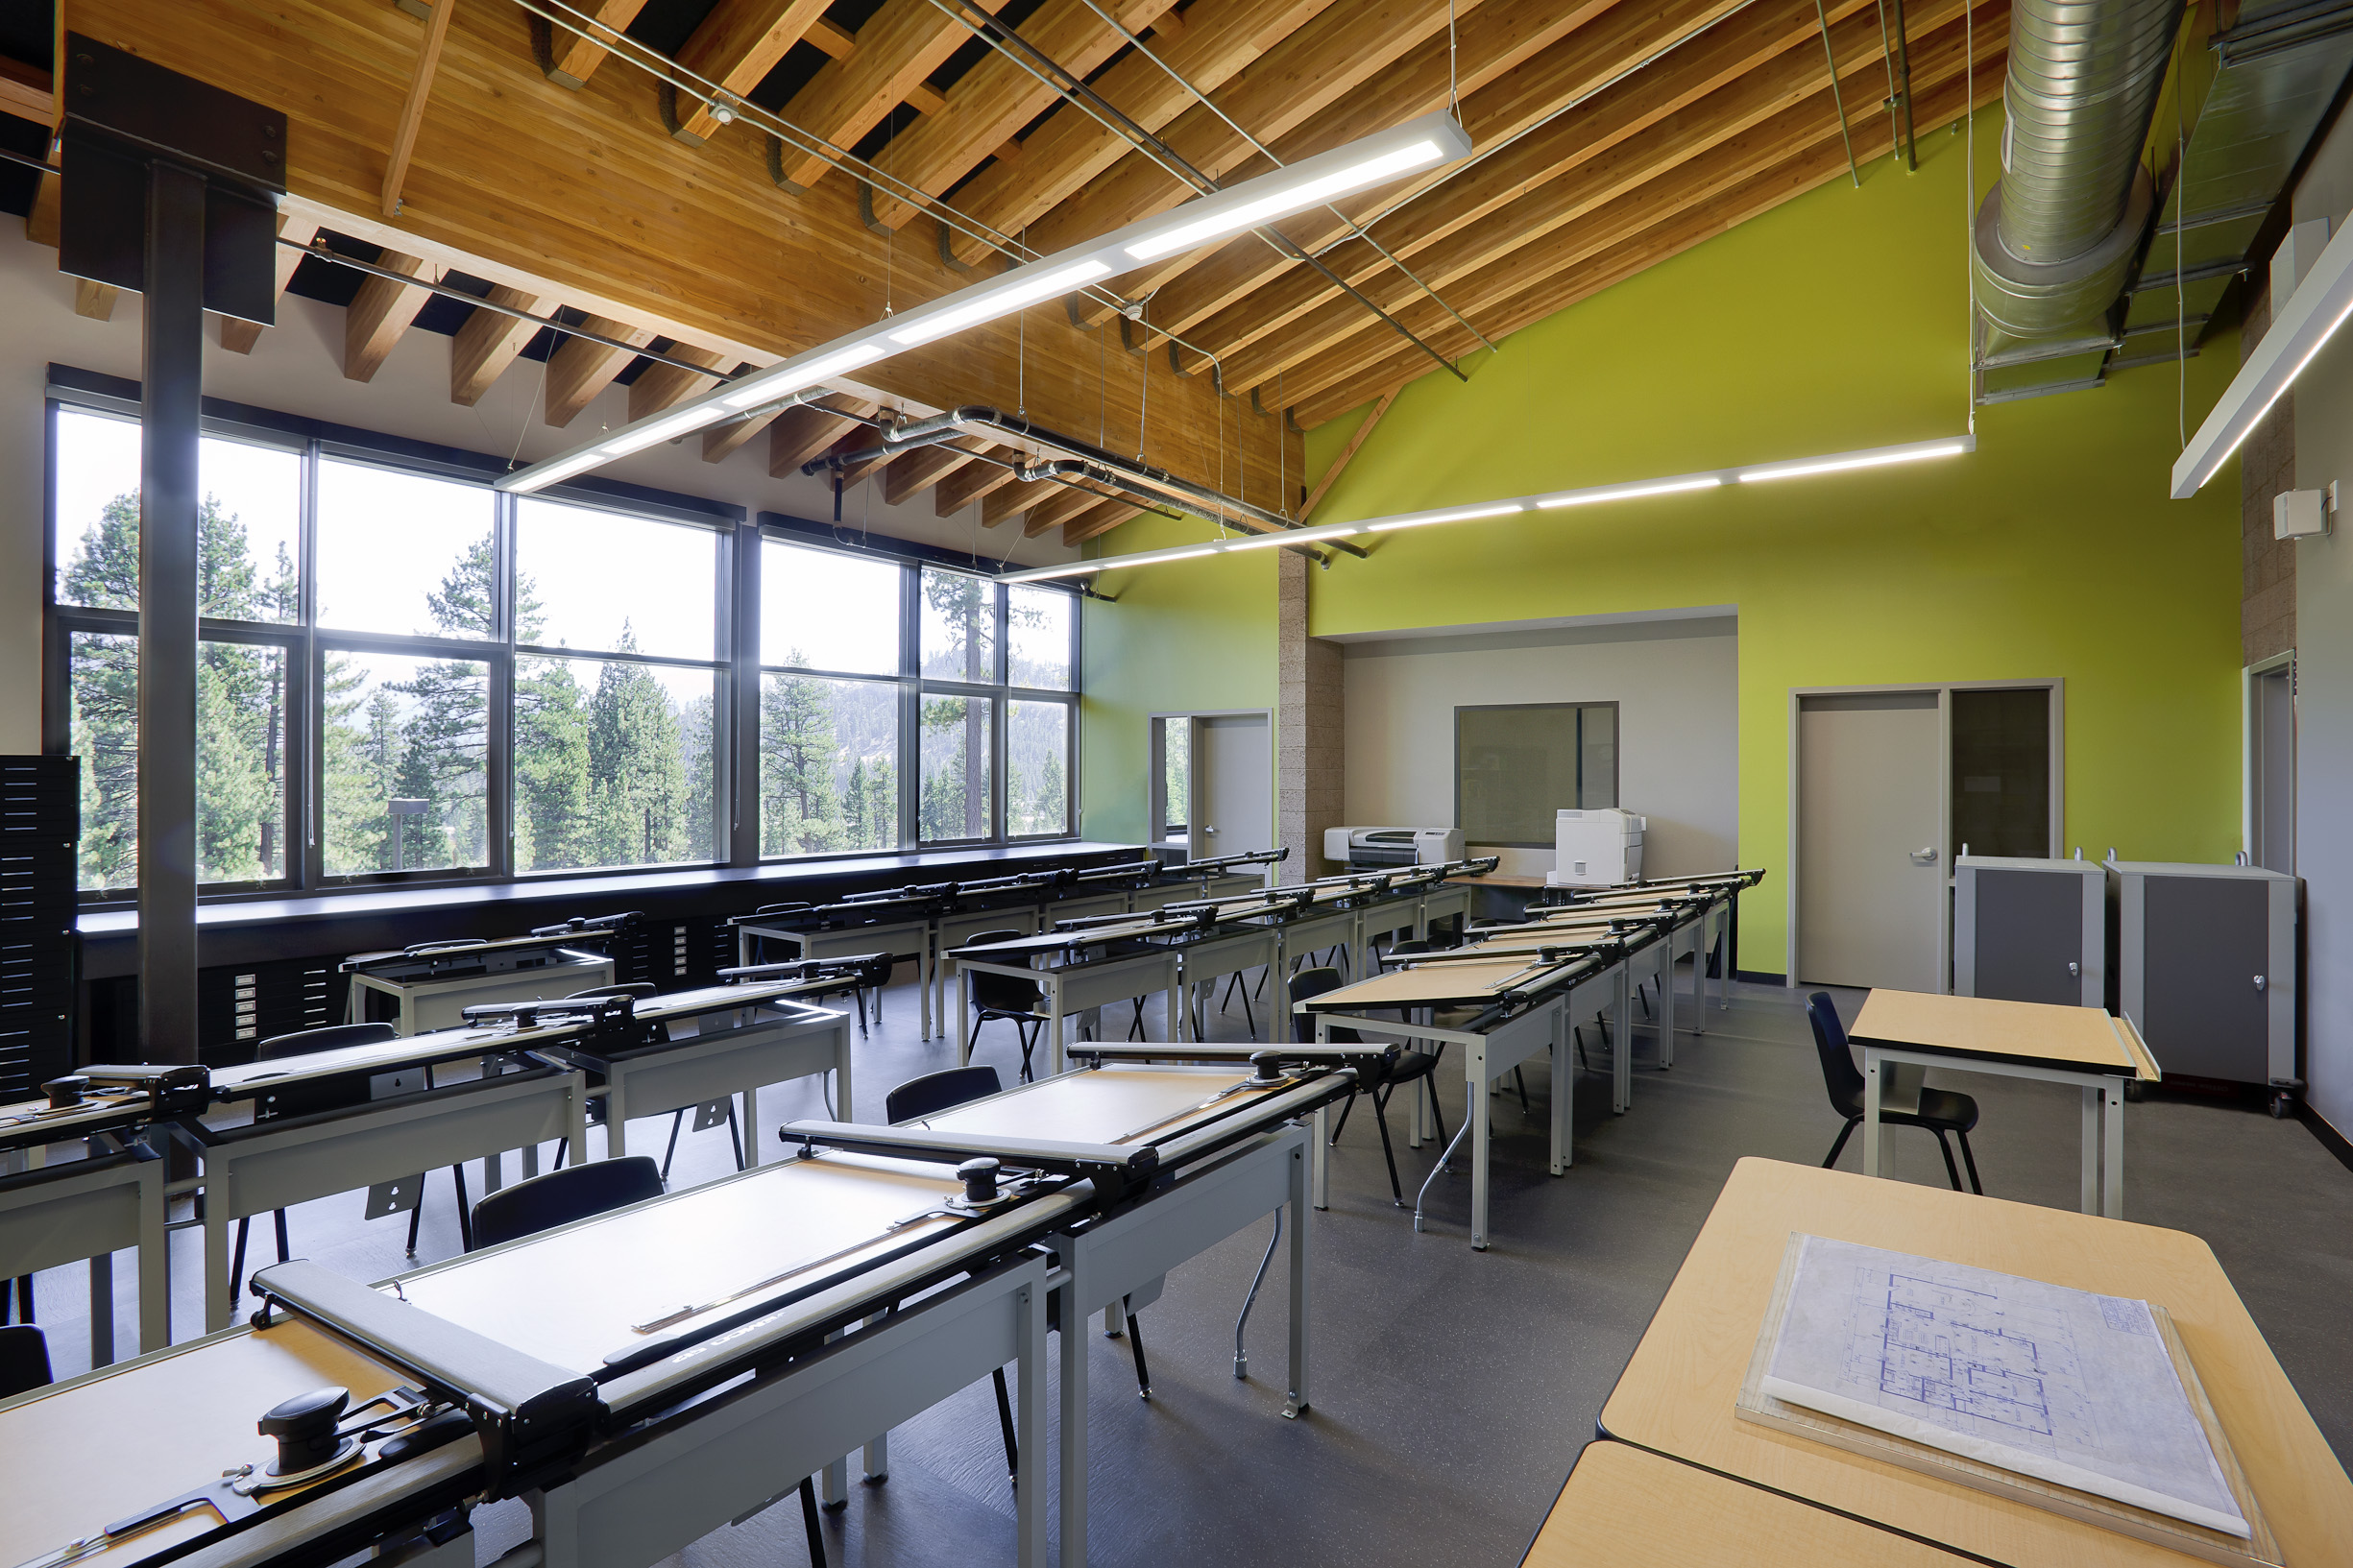 School design heavily awarded by orange county architects - San diego interior design school ...